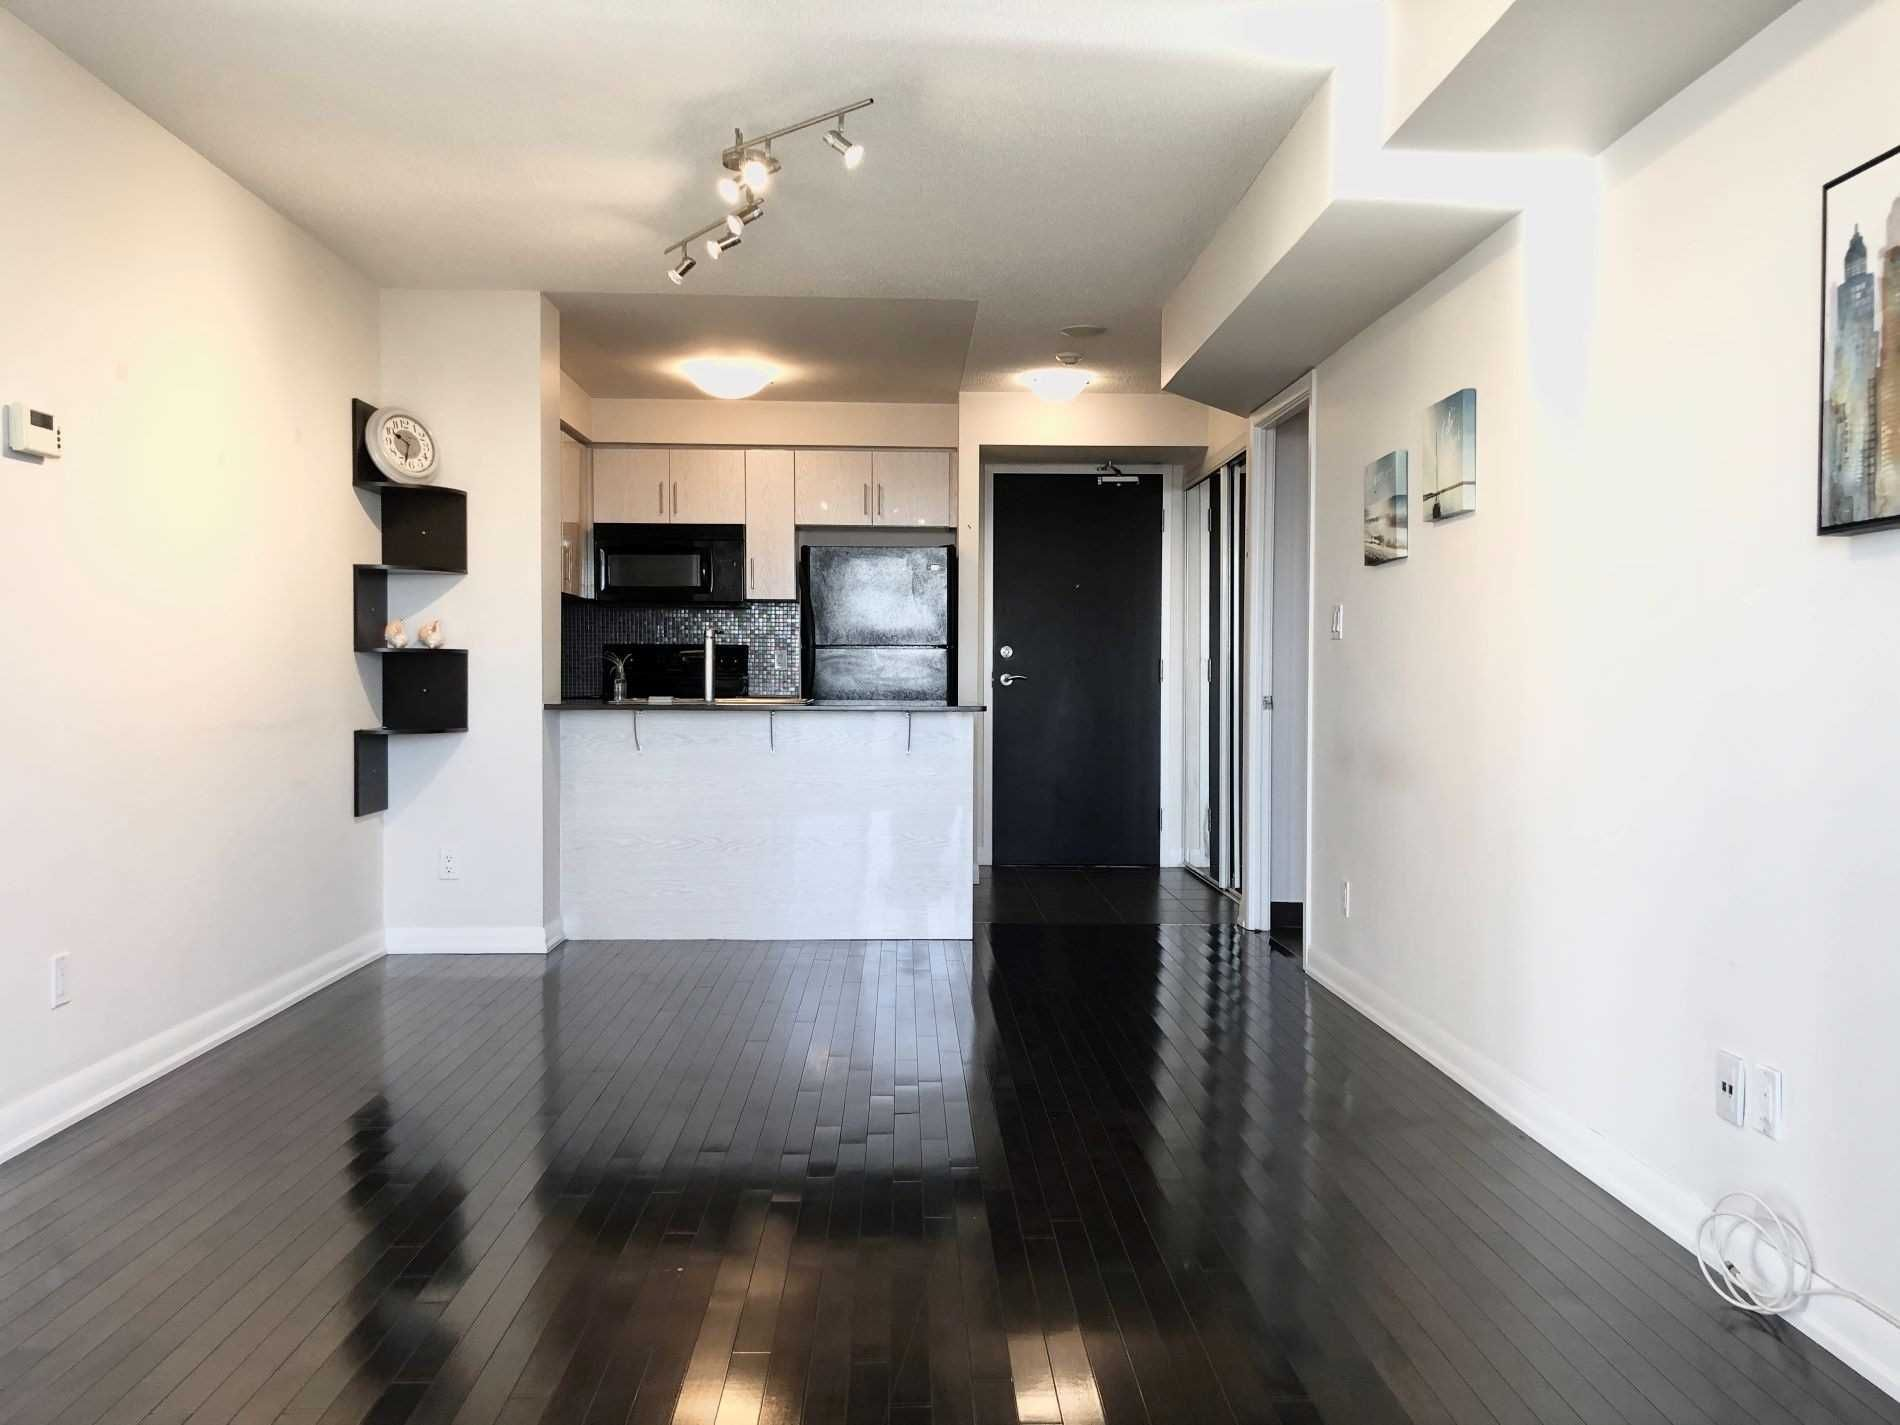 5791 Yonge St, unit 2509 for rent in Toronto - image #2